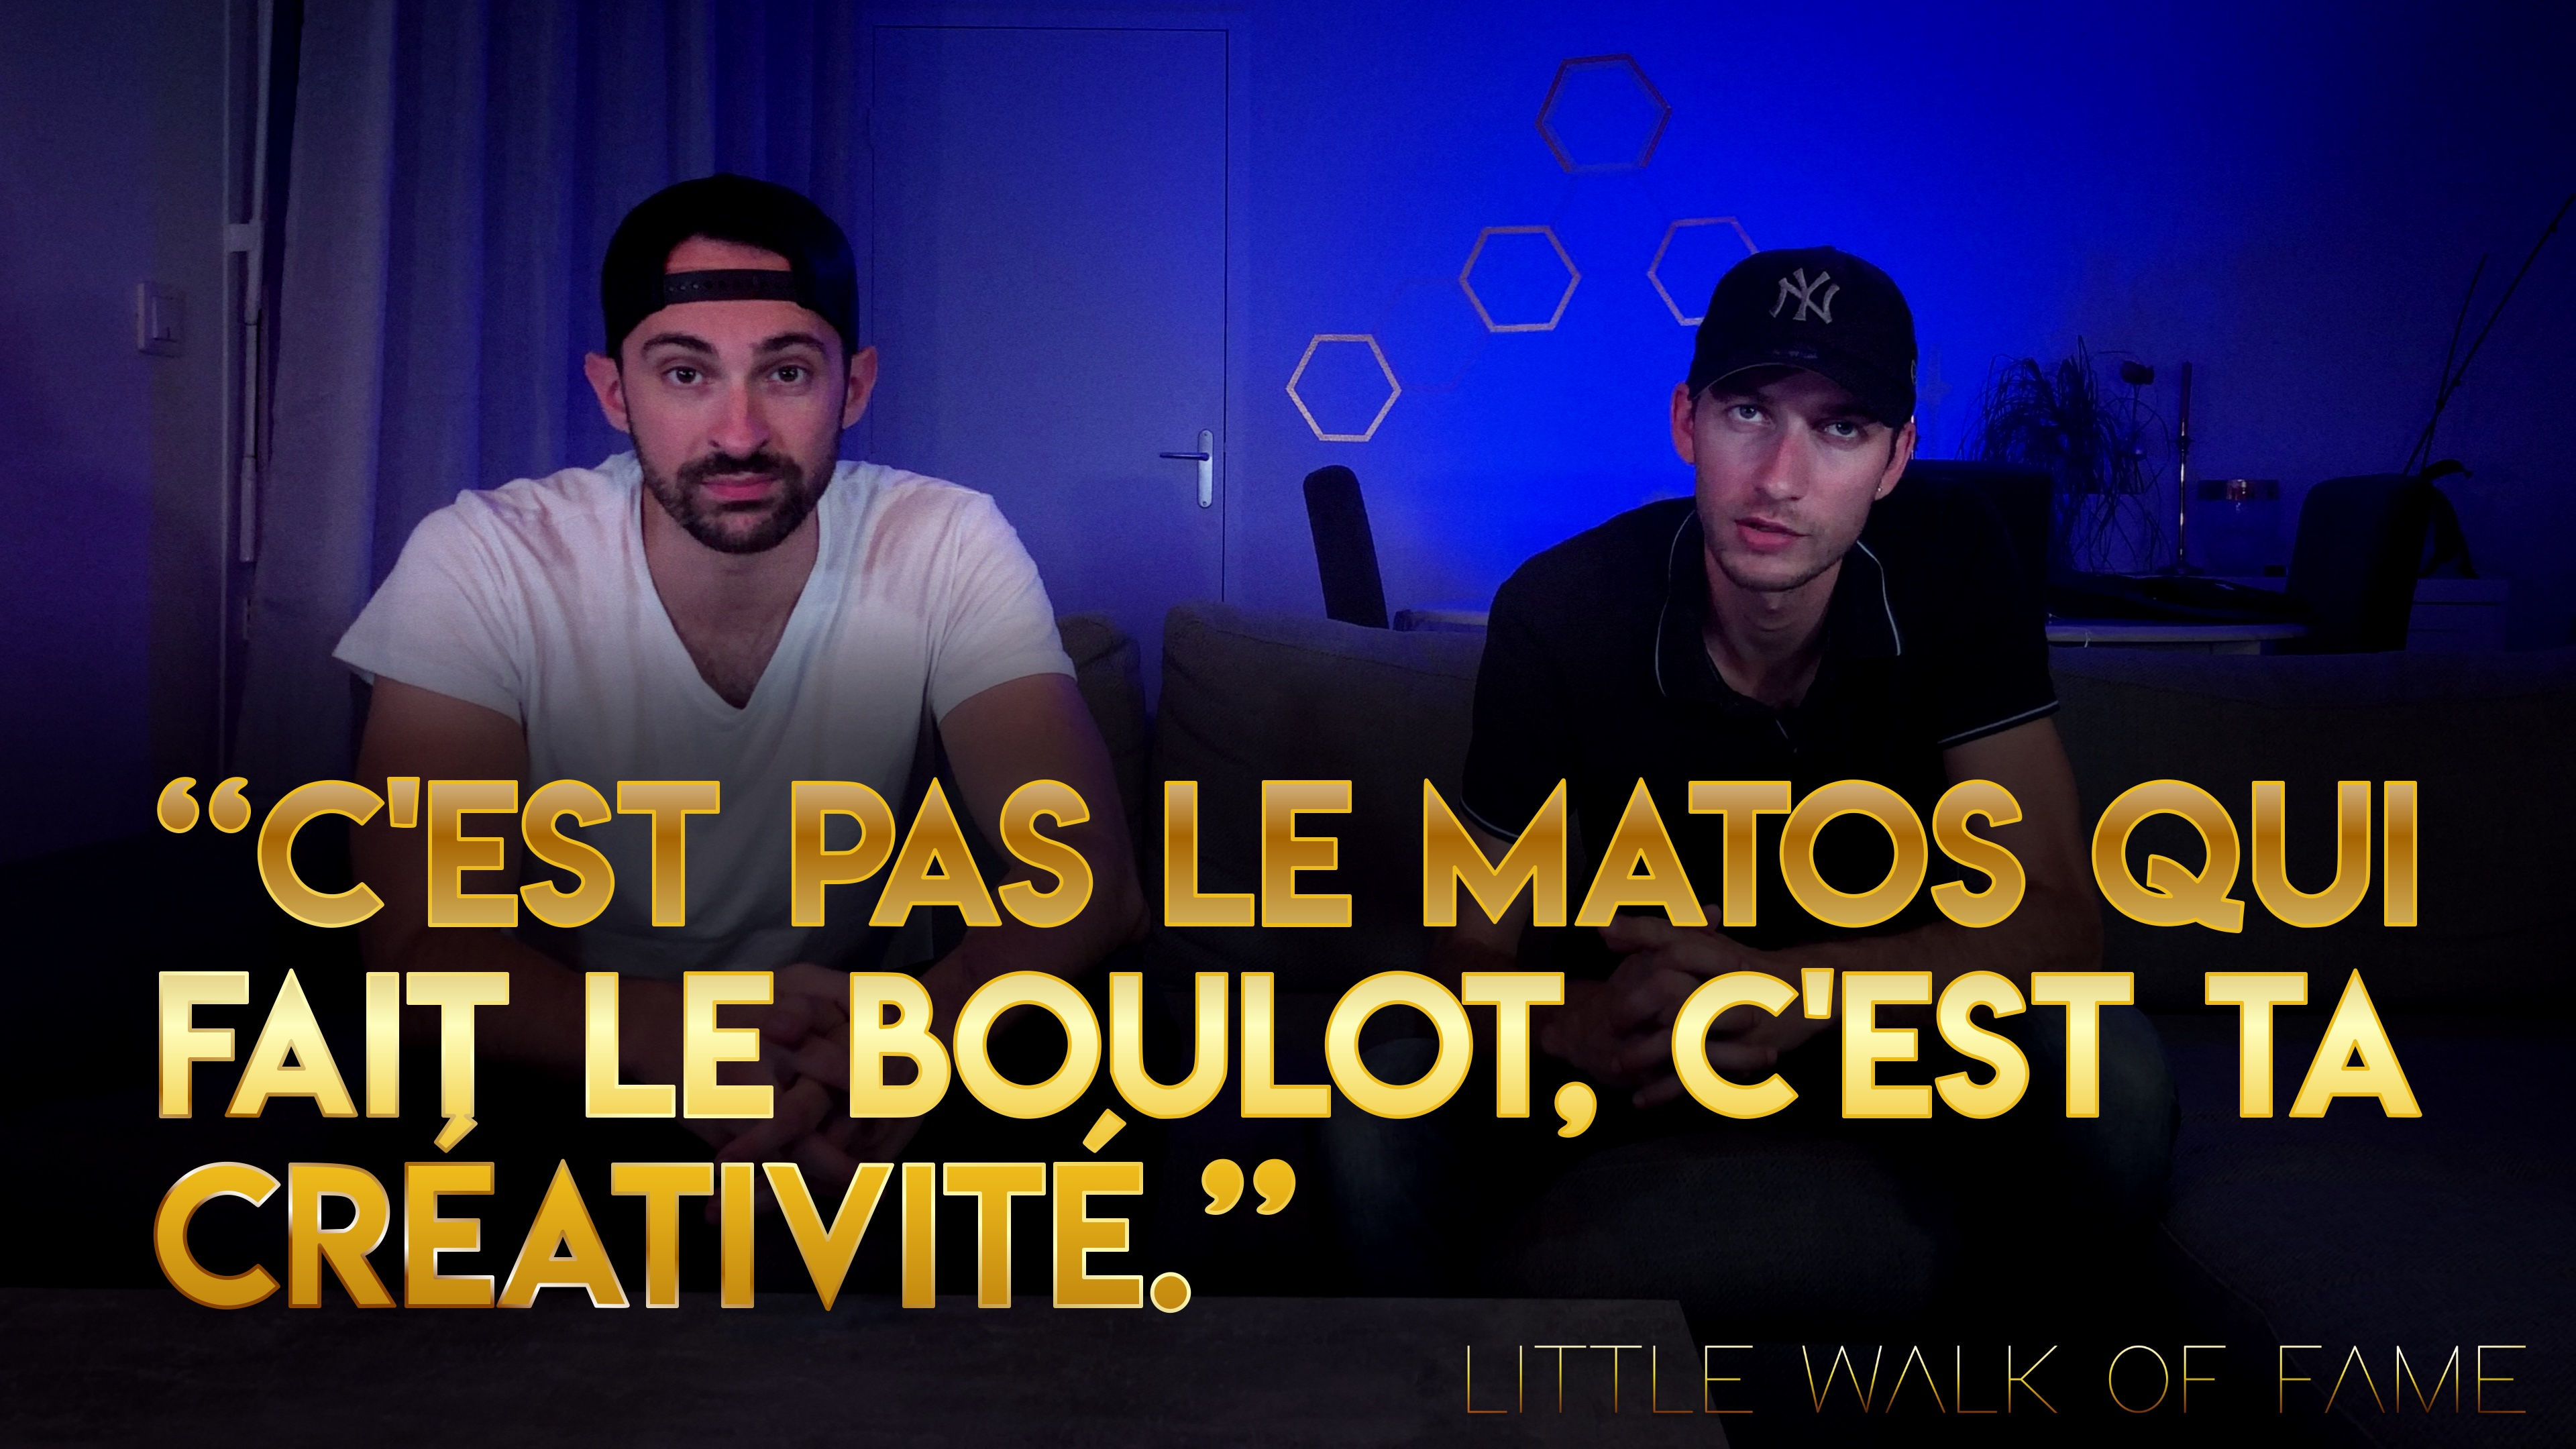 LITTLE WALK OF FAME - citation